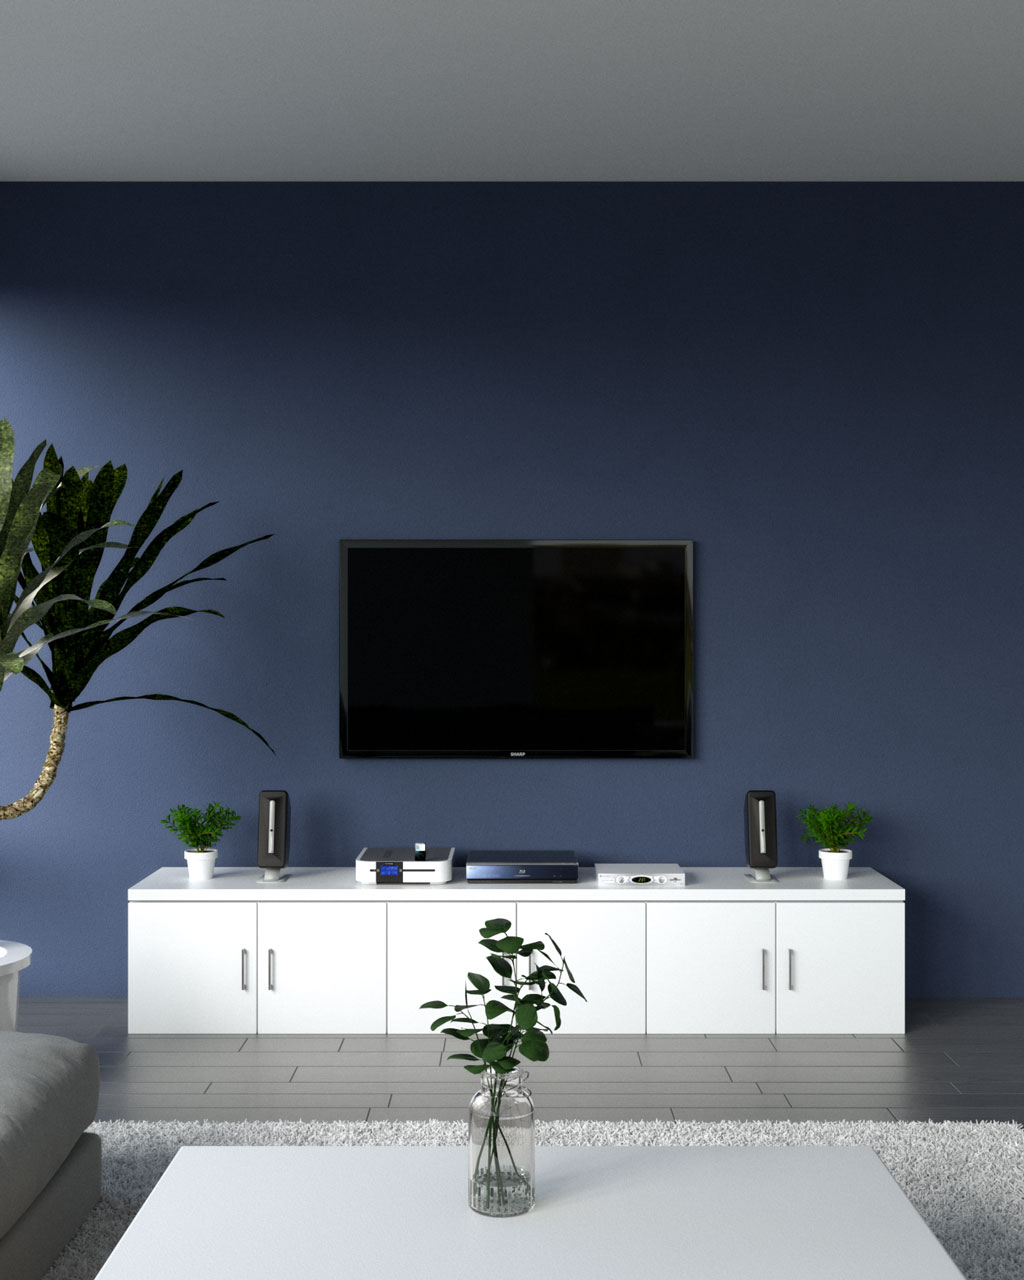 Navy blue accent wall ideas behind wall mounted tv